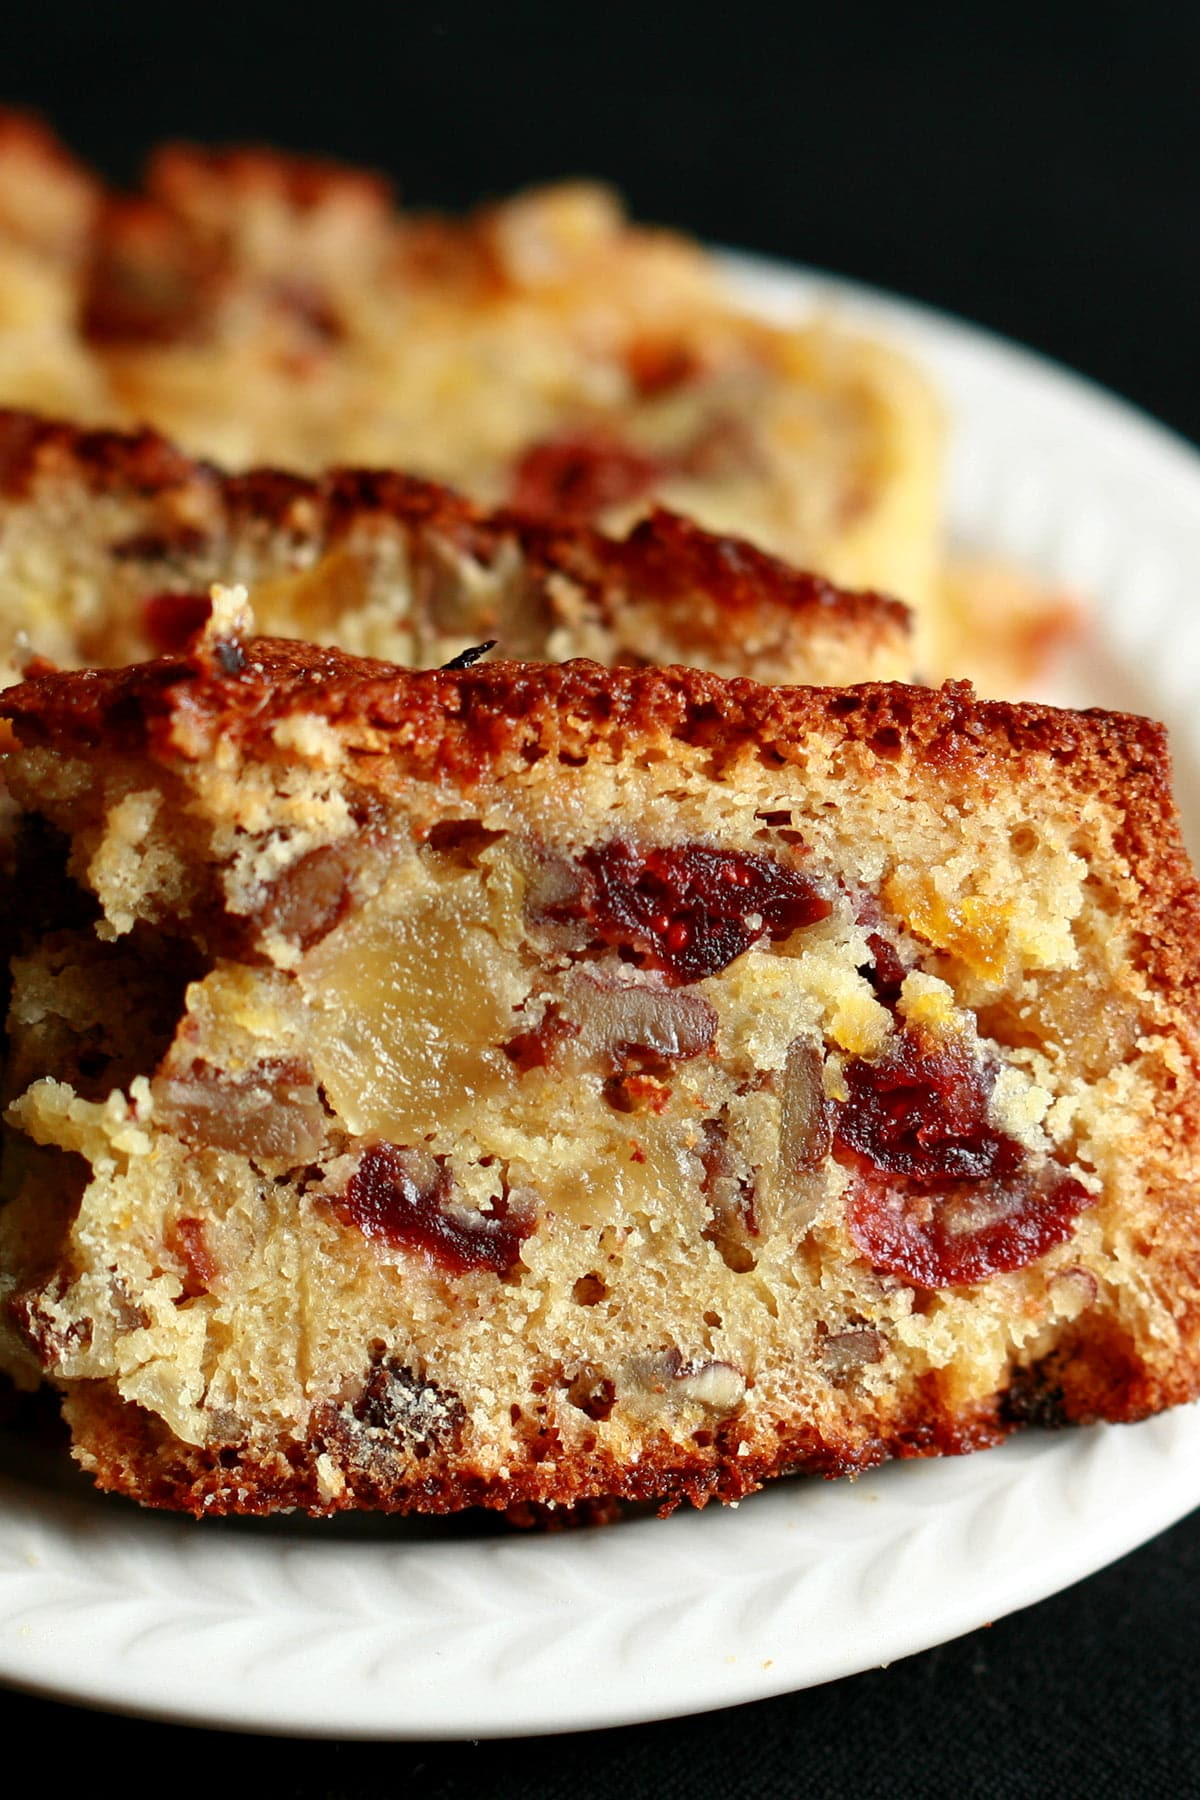 Slices of fruitcake, on a small white plate. The cake is generously studded with dried - not candied - fruit.